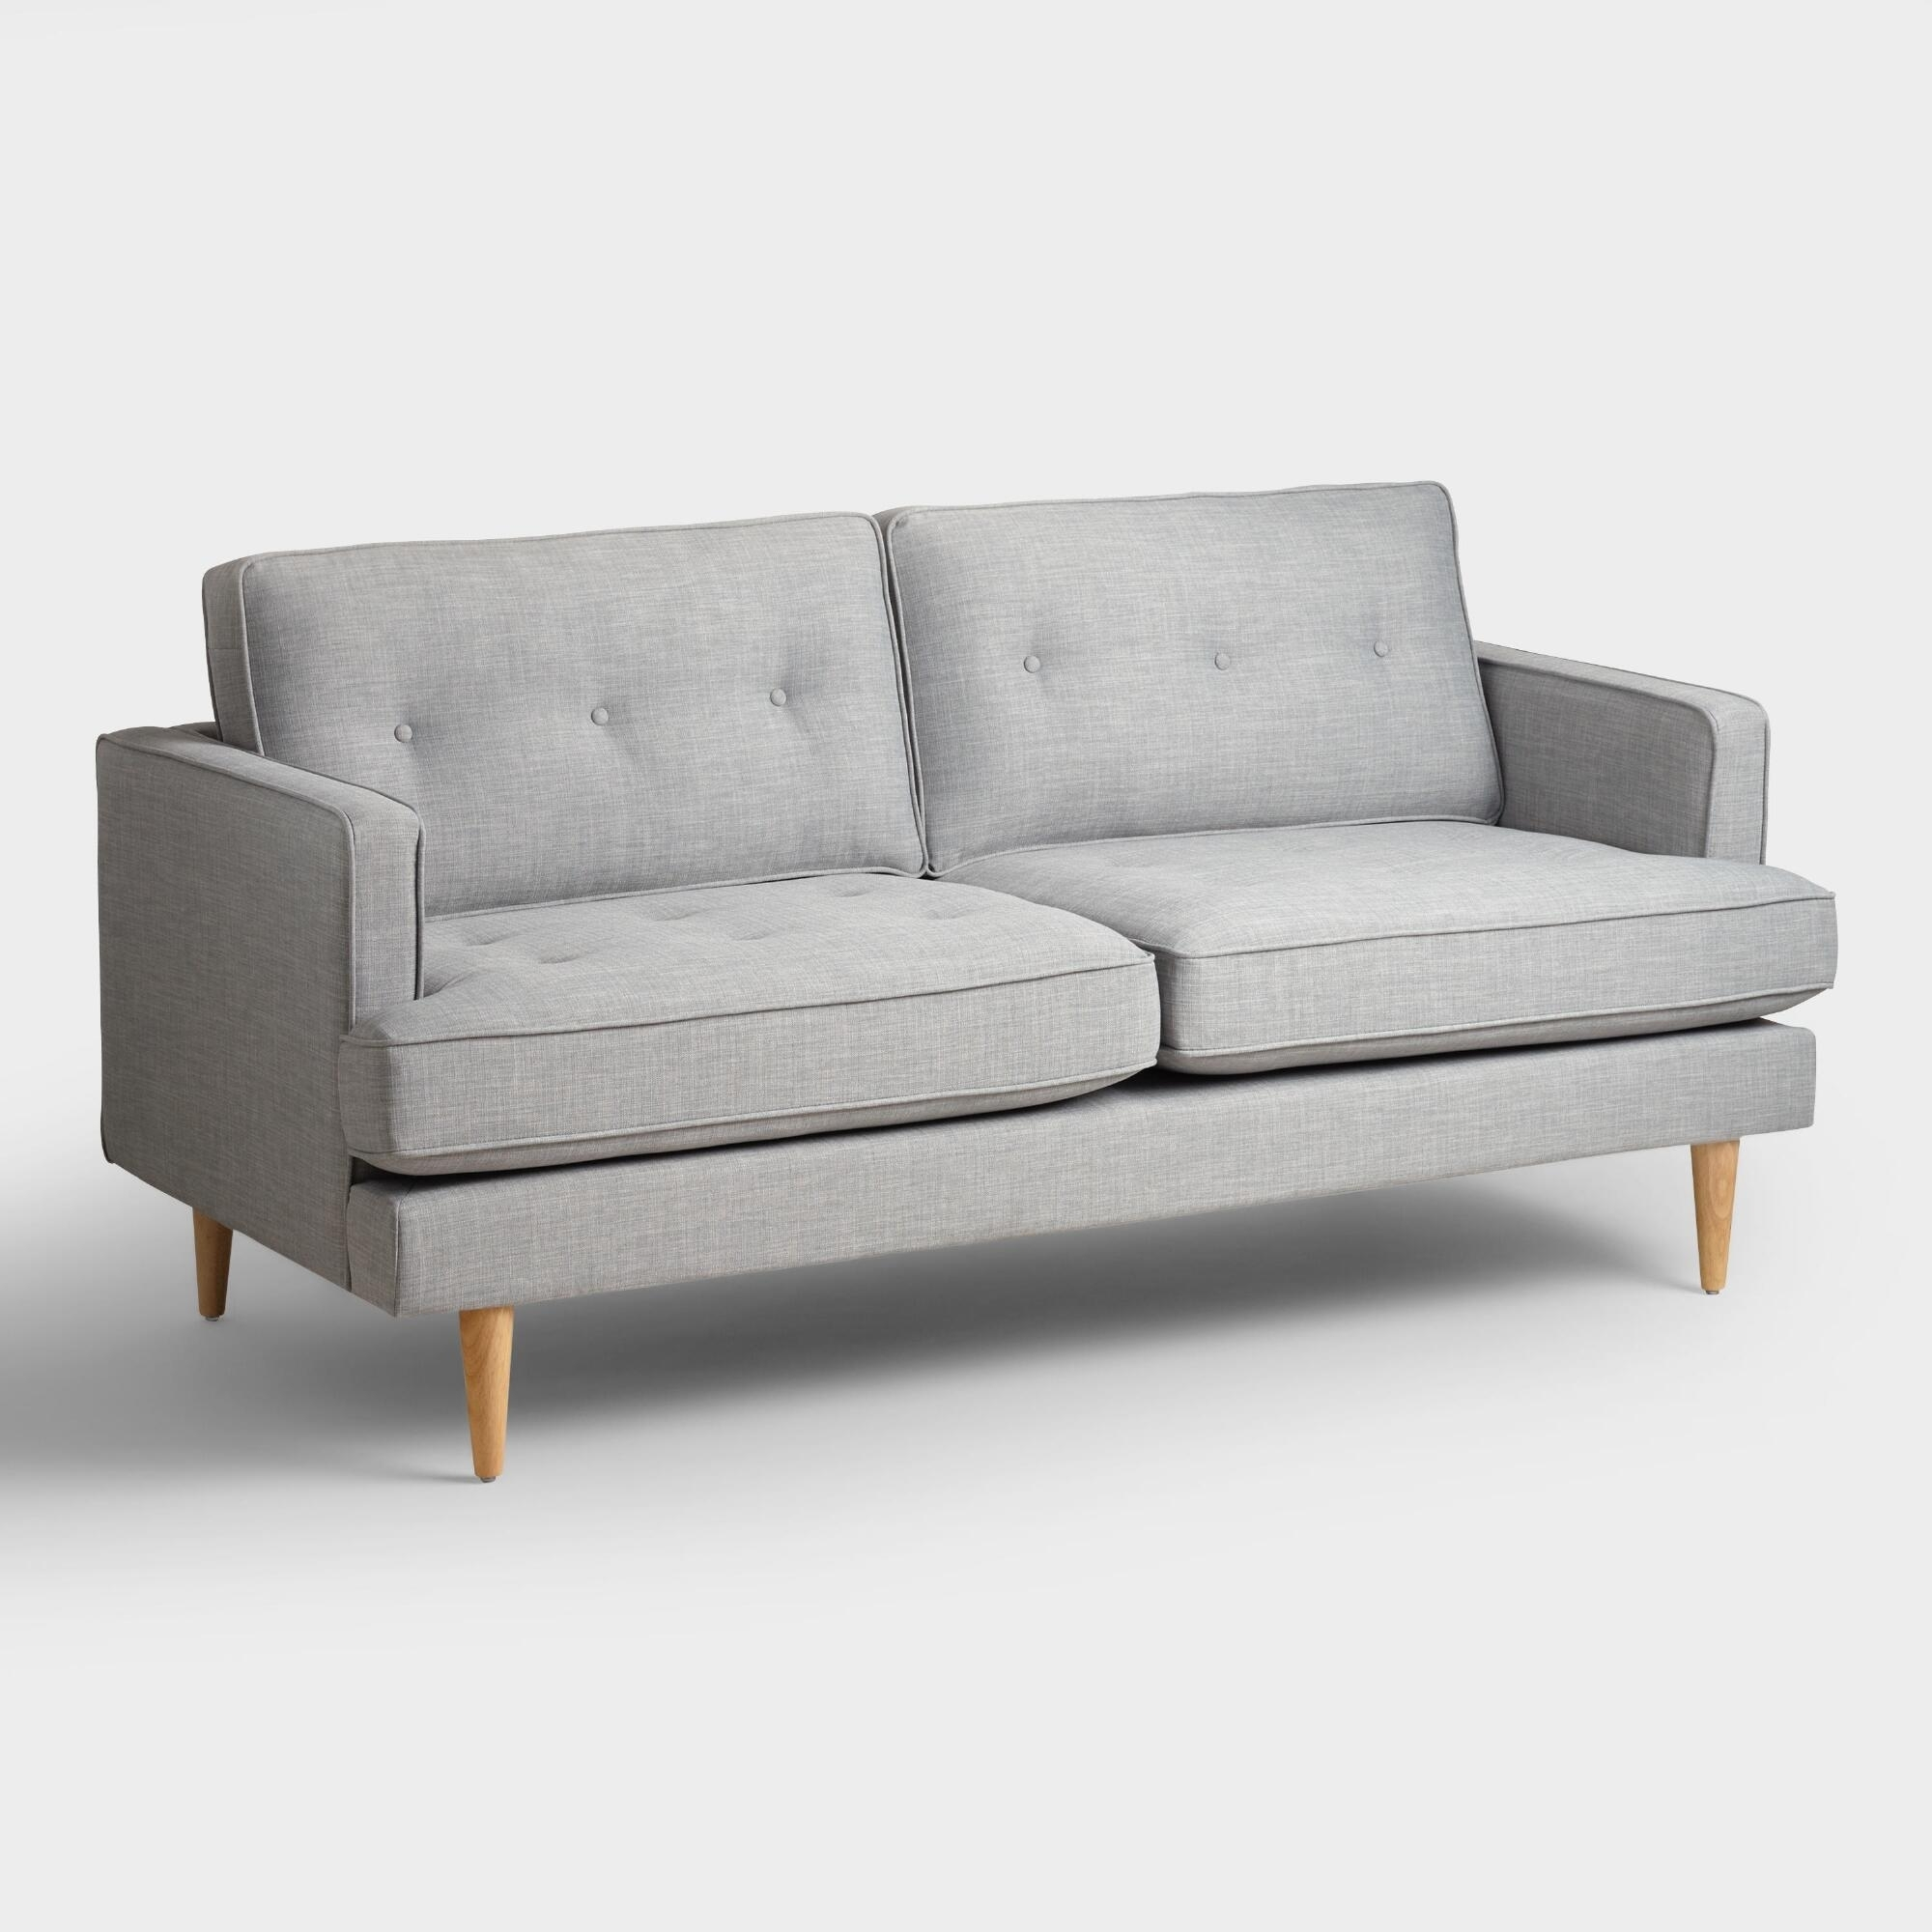 20 Ideas Of Sears Sofa Bed In Sears Sofas (View 1 of 10)